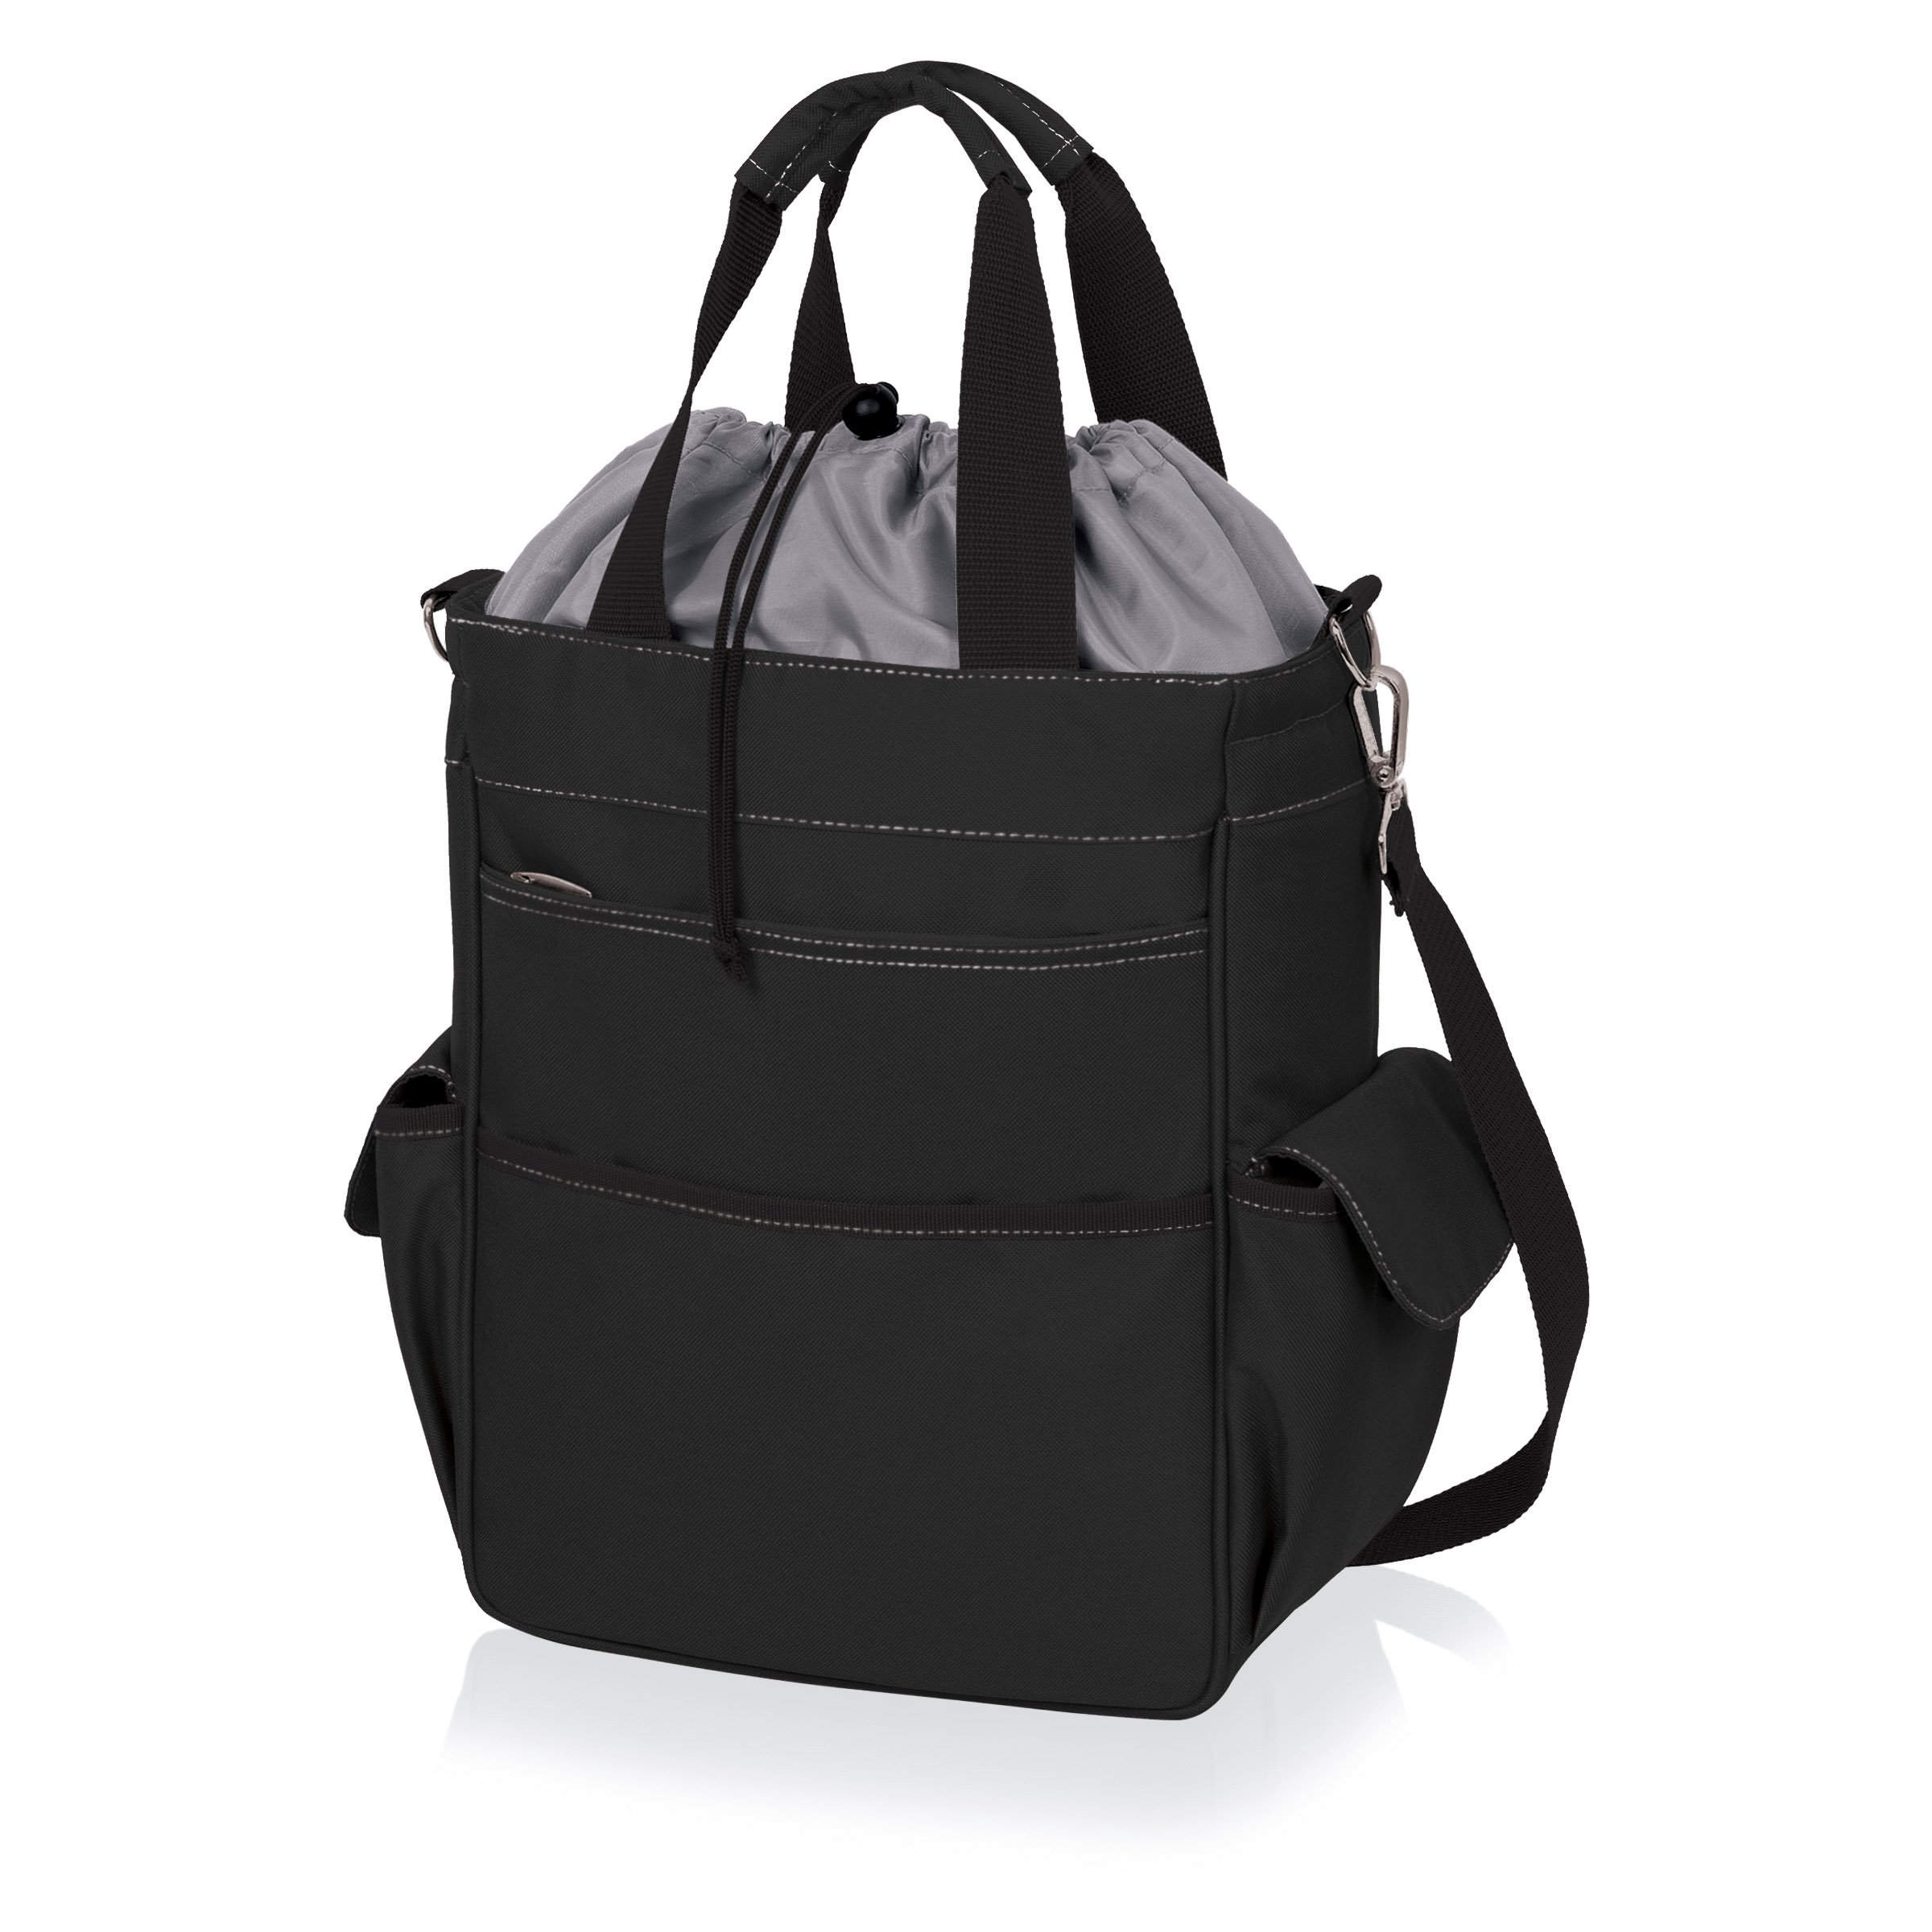 ONIVA - a Picnic Time Brand Activo Insulated Tote with Waterproof Lining, Black